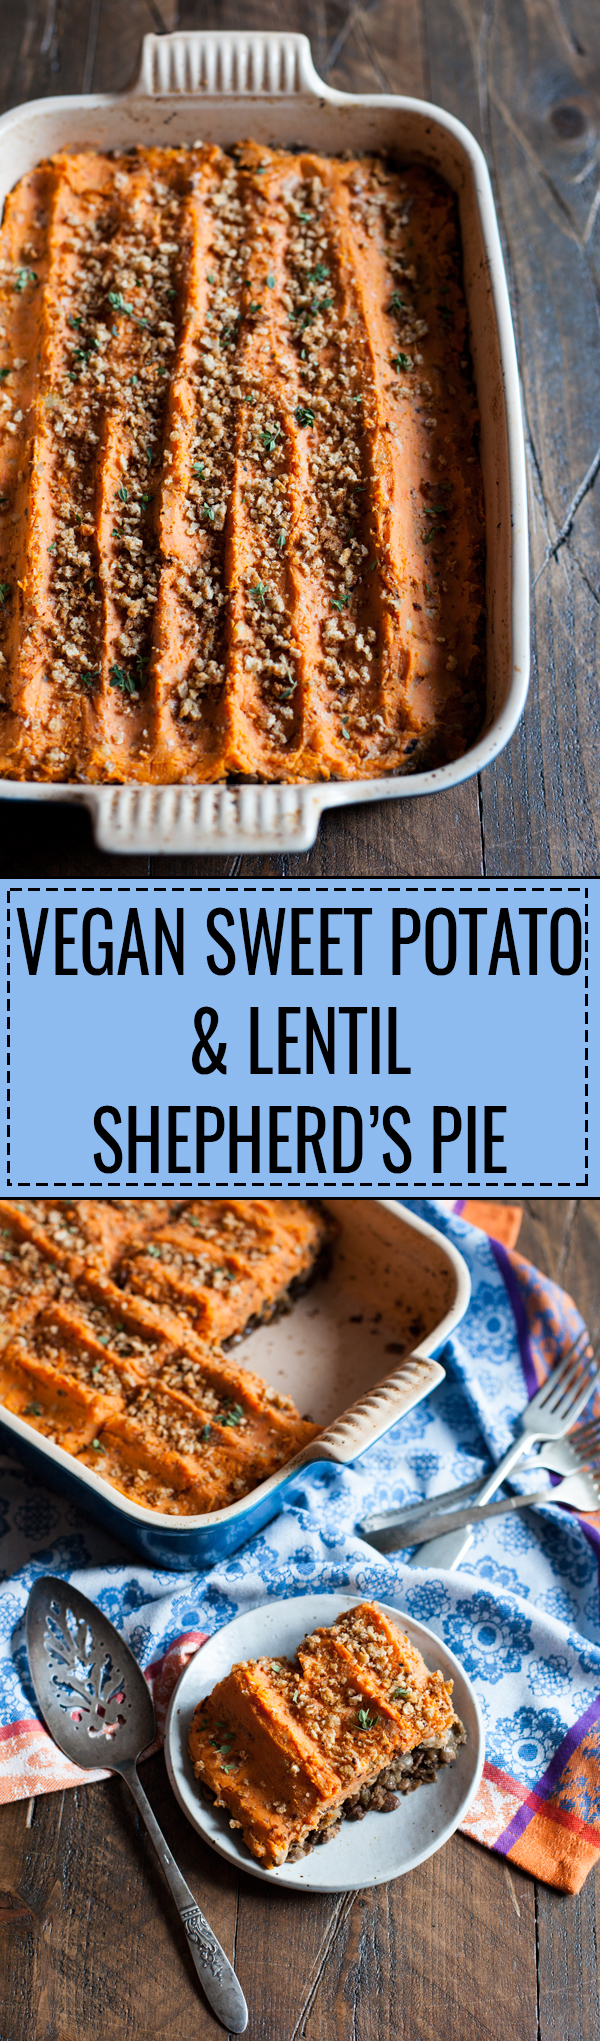 Vegan Sweet Potato and Lentil Shepherd's Pie | A hearty, flavorful #vegan and #glutenfree main dish for the holiday season! | The Full Helping